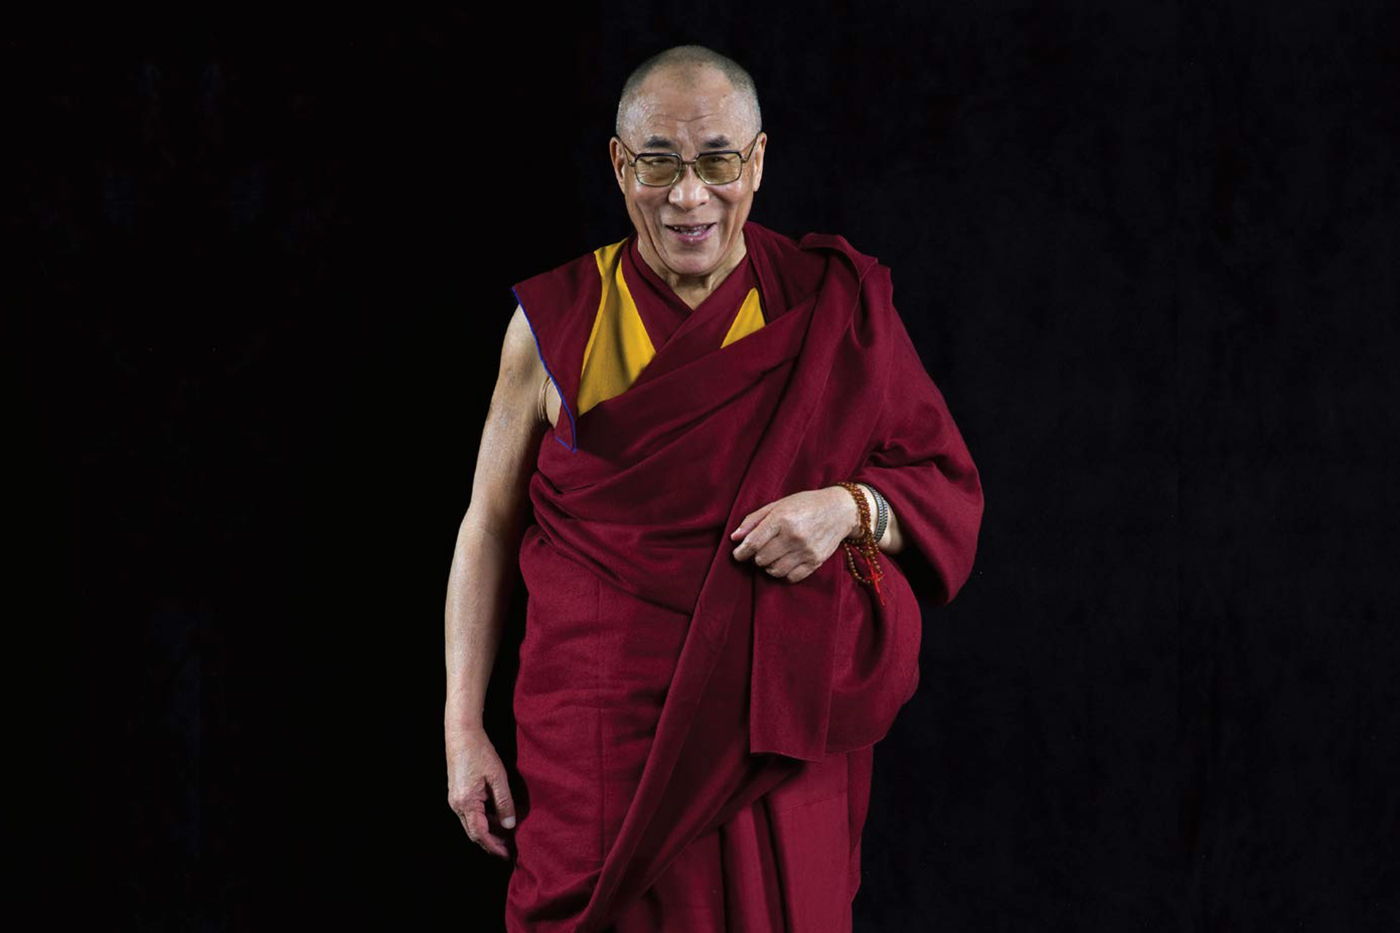 The Dalai Lama S History With The Cia Behind The Scenes Fortune